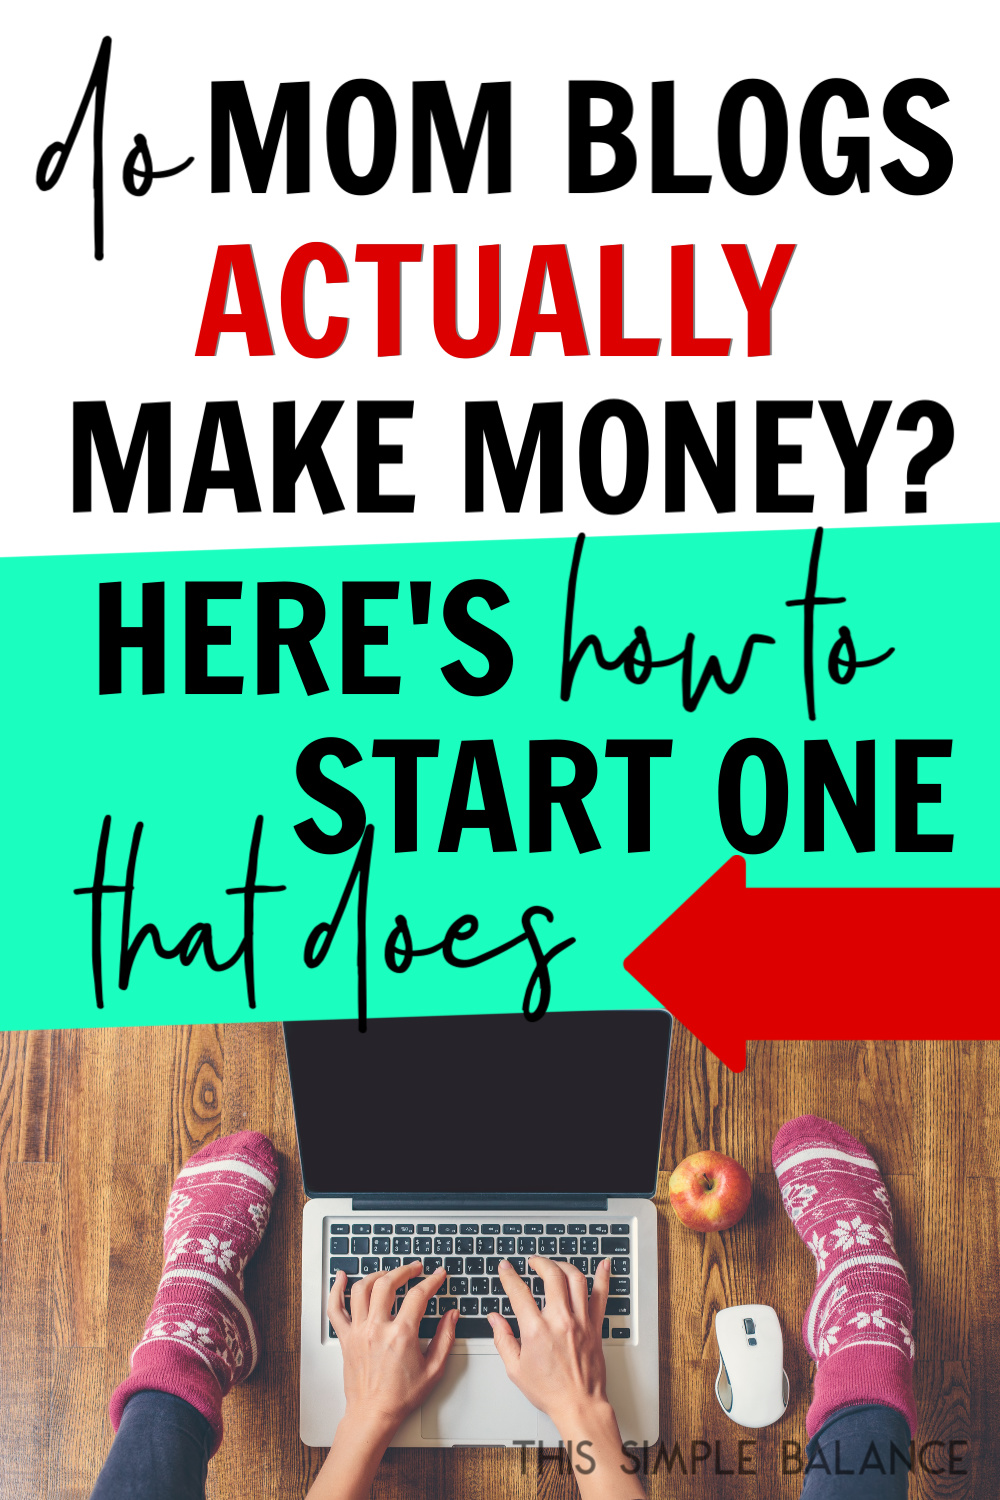 Do mom blogs actually make money (NOT the ones that blog about blogging)? Yes, they do! Find out how mom blogs make money to see if it's a good way for you to earn an income from home.